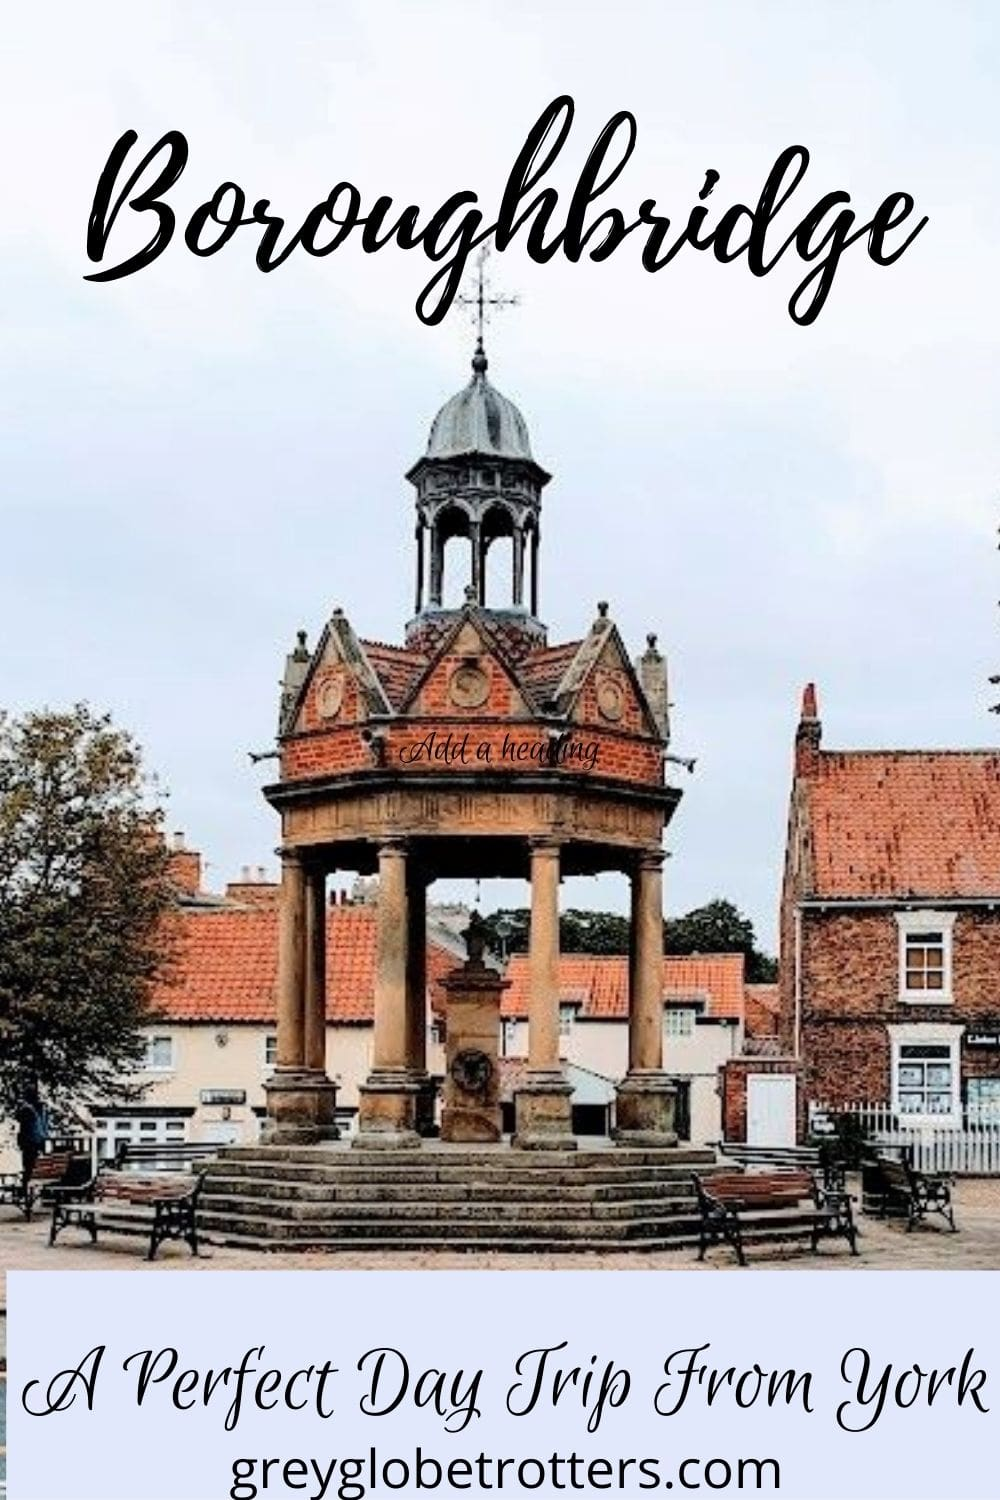 Boroughbridge - A Perfect Day trip from York